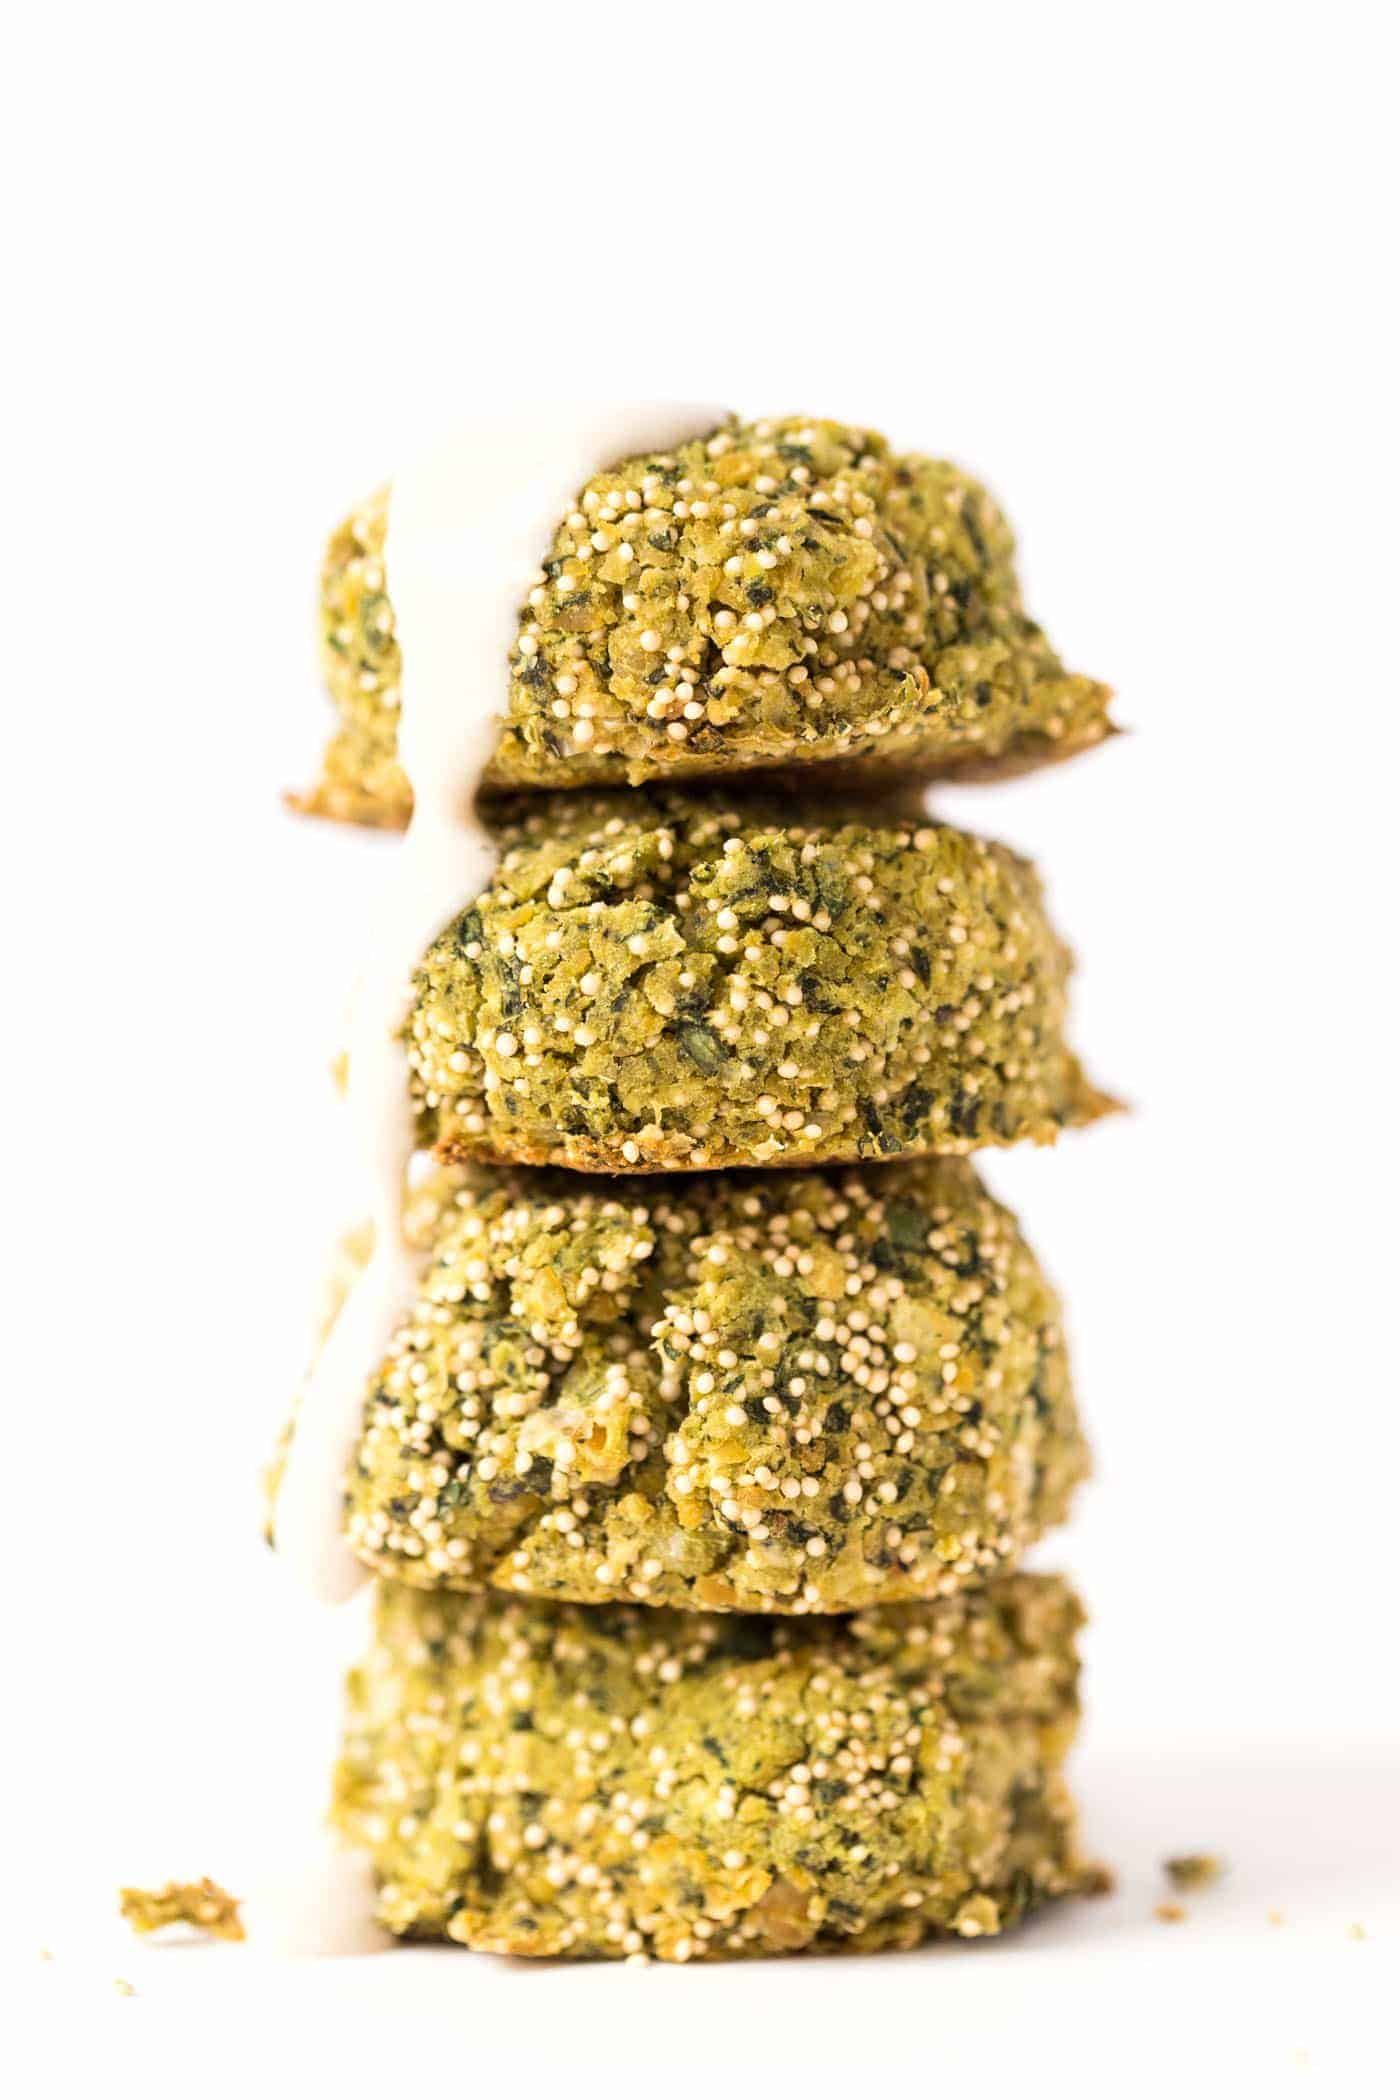 These BAKED Vegan Falafel are made with just 9 ingredients, take 20 minutes to bake and taste AMAZING!